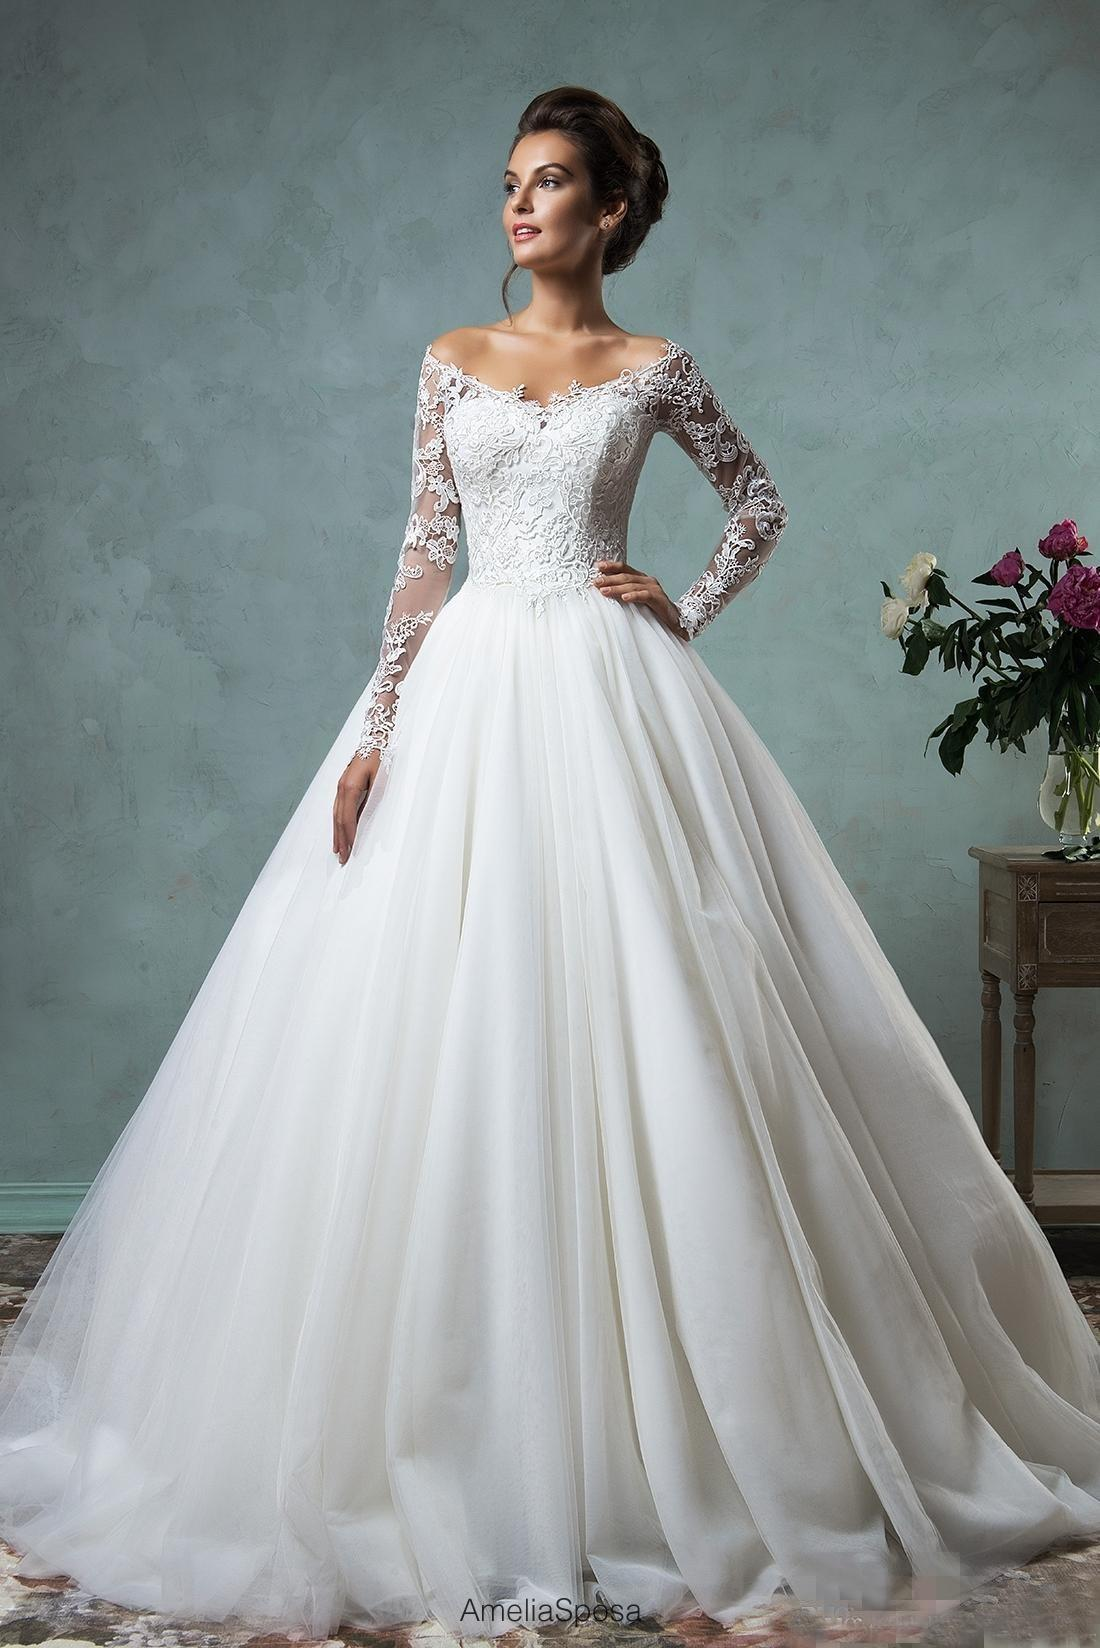 Vintage Amelia Sposa Lace Ball Gown Wedding Dresses Long Sleeves ...